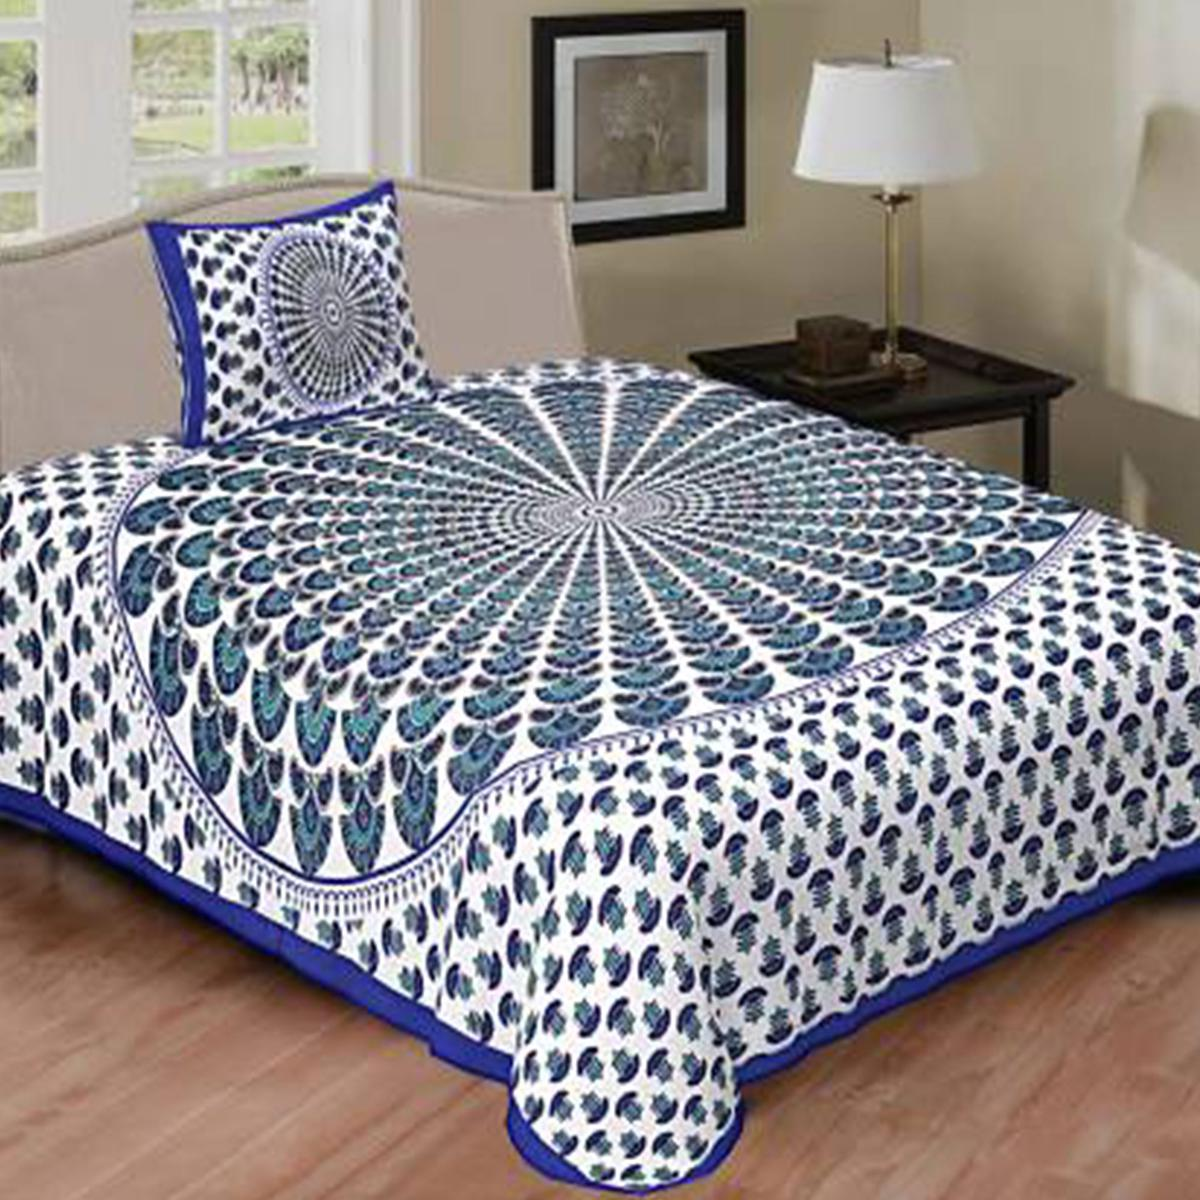 POOJA FASHION - Blue Colored Printed Single Cotton Bedsheet With 1 Pillow Cover